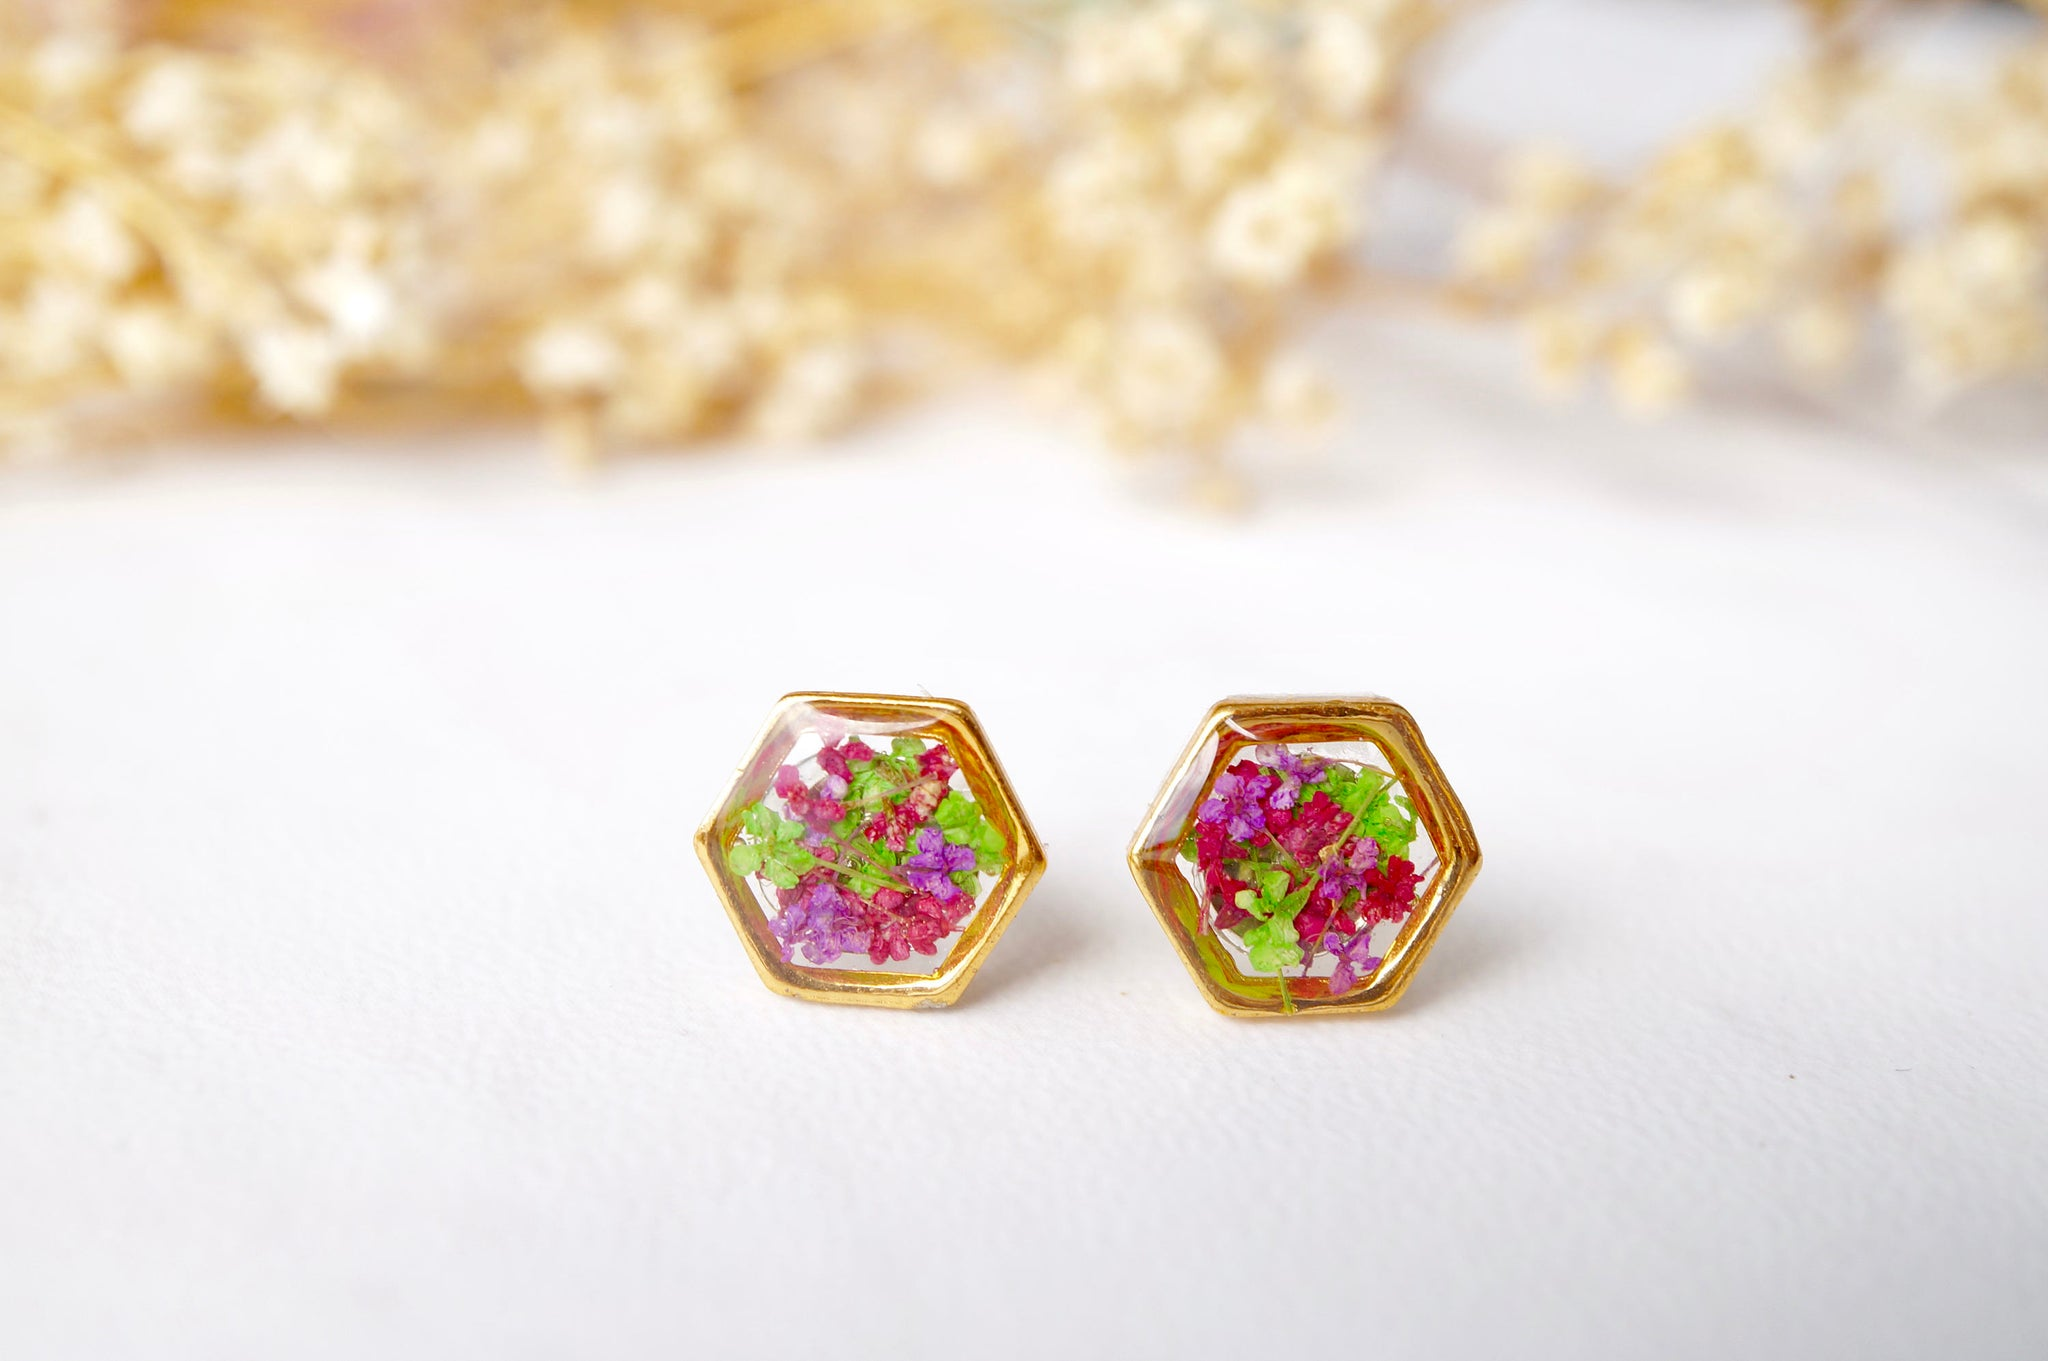 Real Dried Flowers and Resin Stud Earrings, Gold Hexagon in Red Purple Green